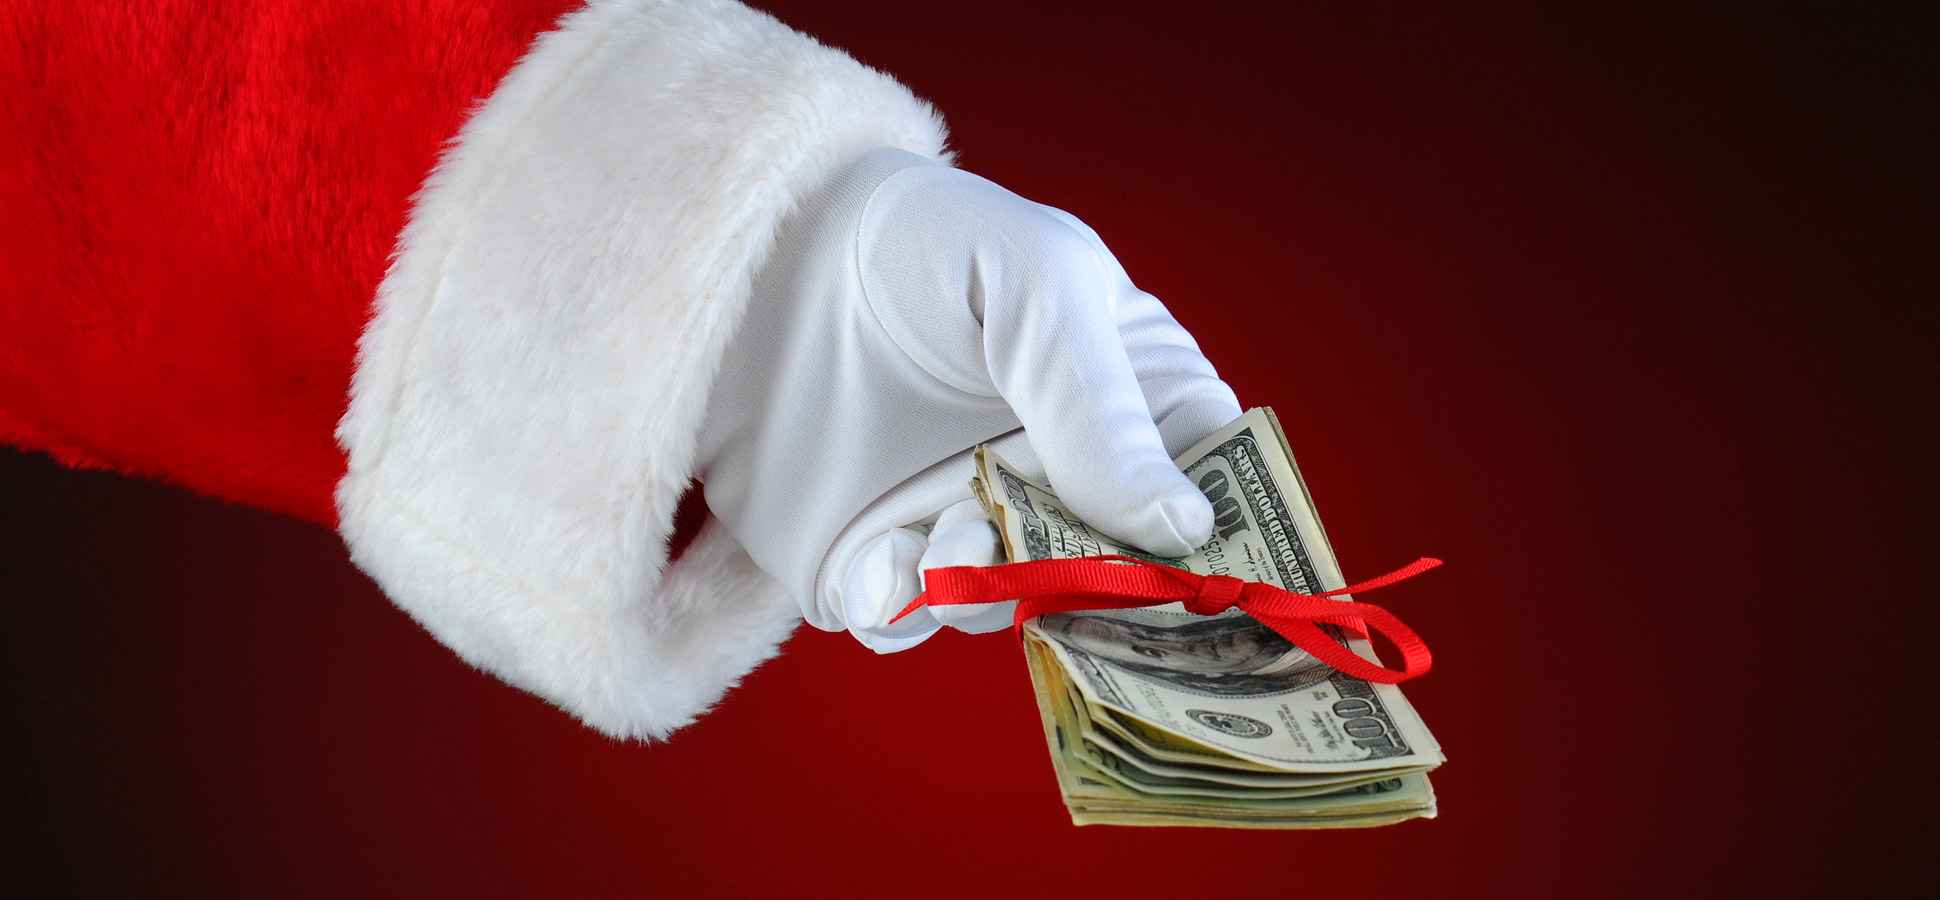 Christmas gift exchange ideas $50 bill